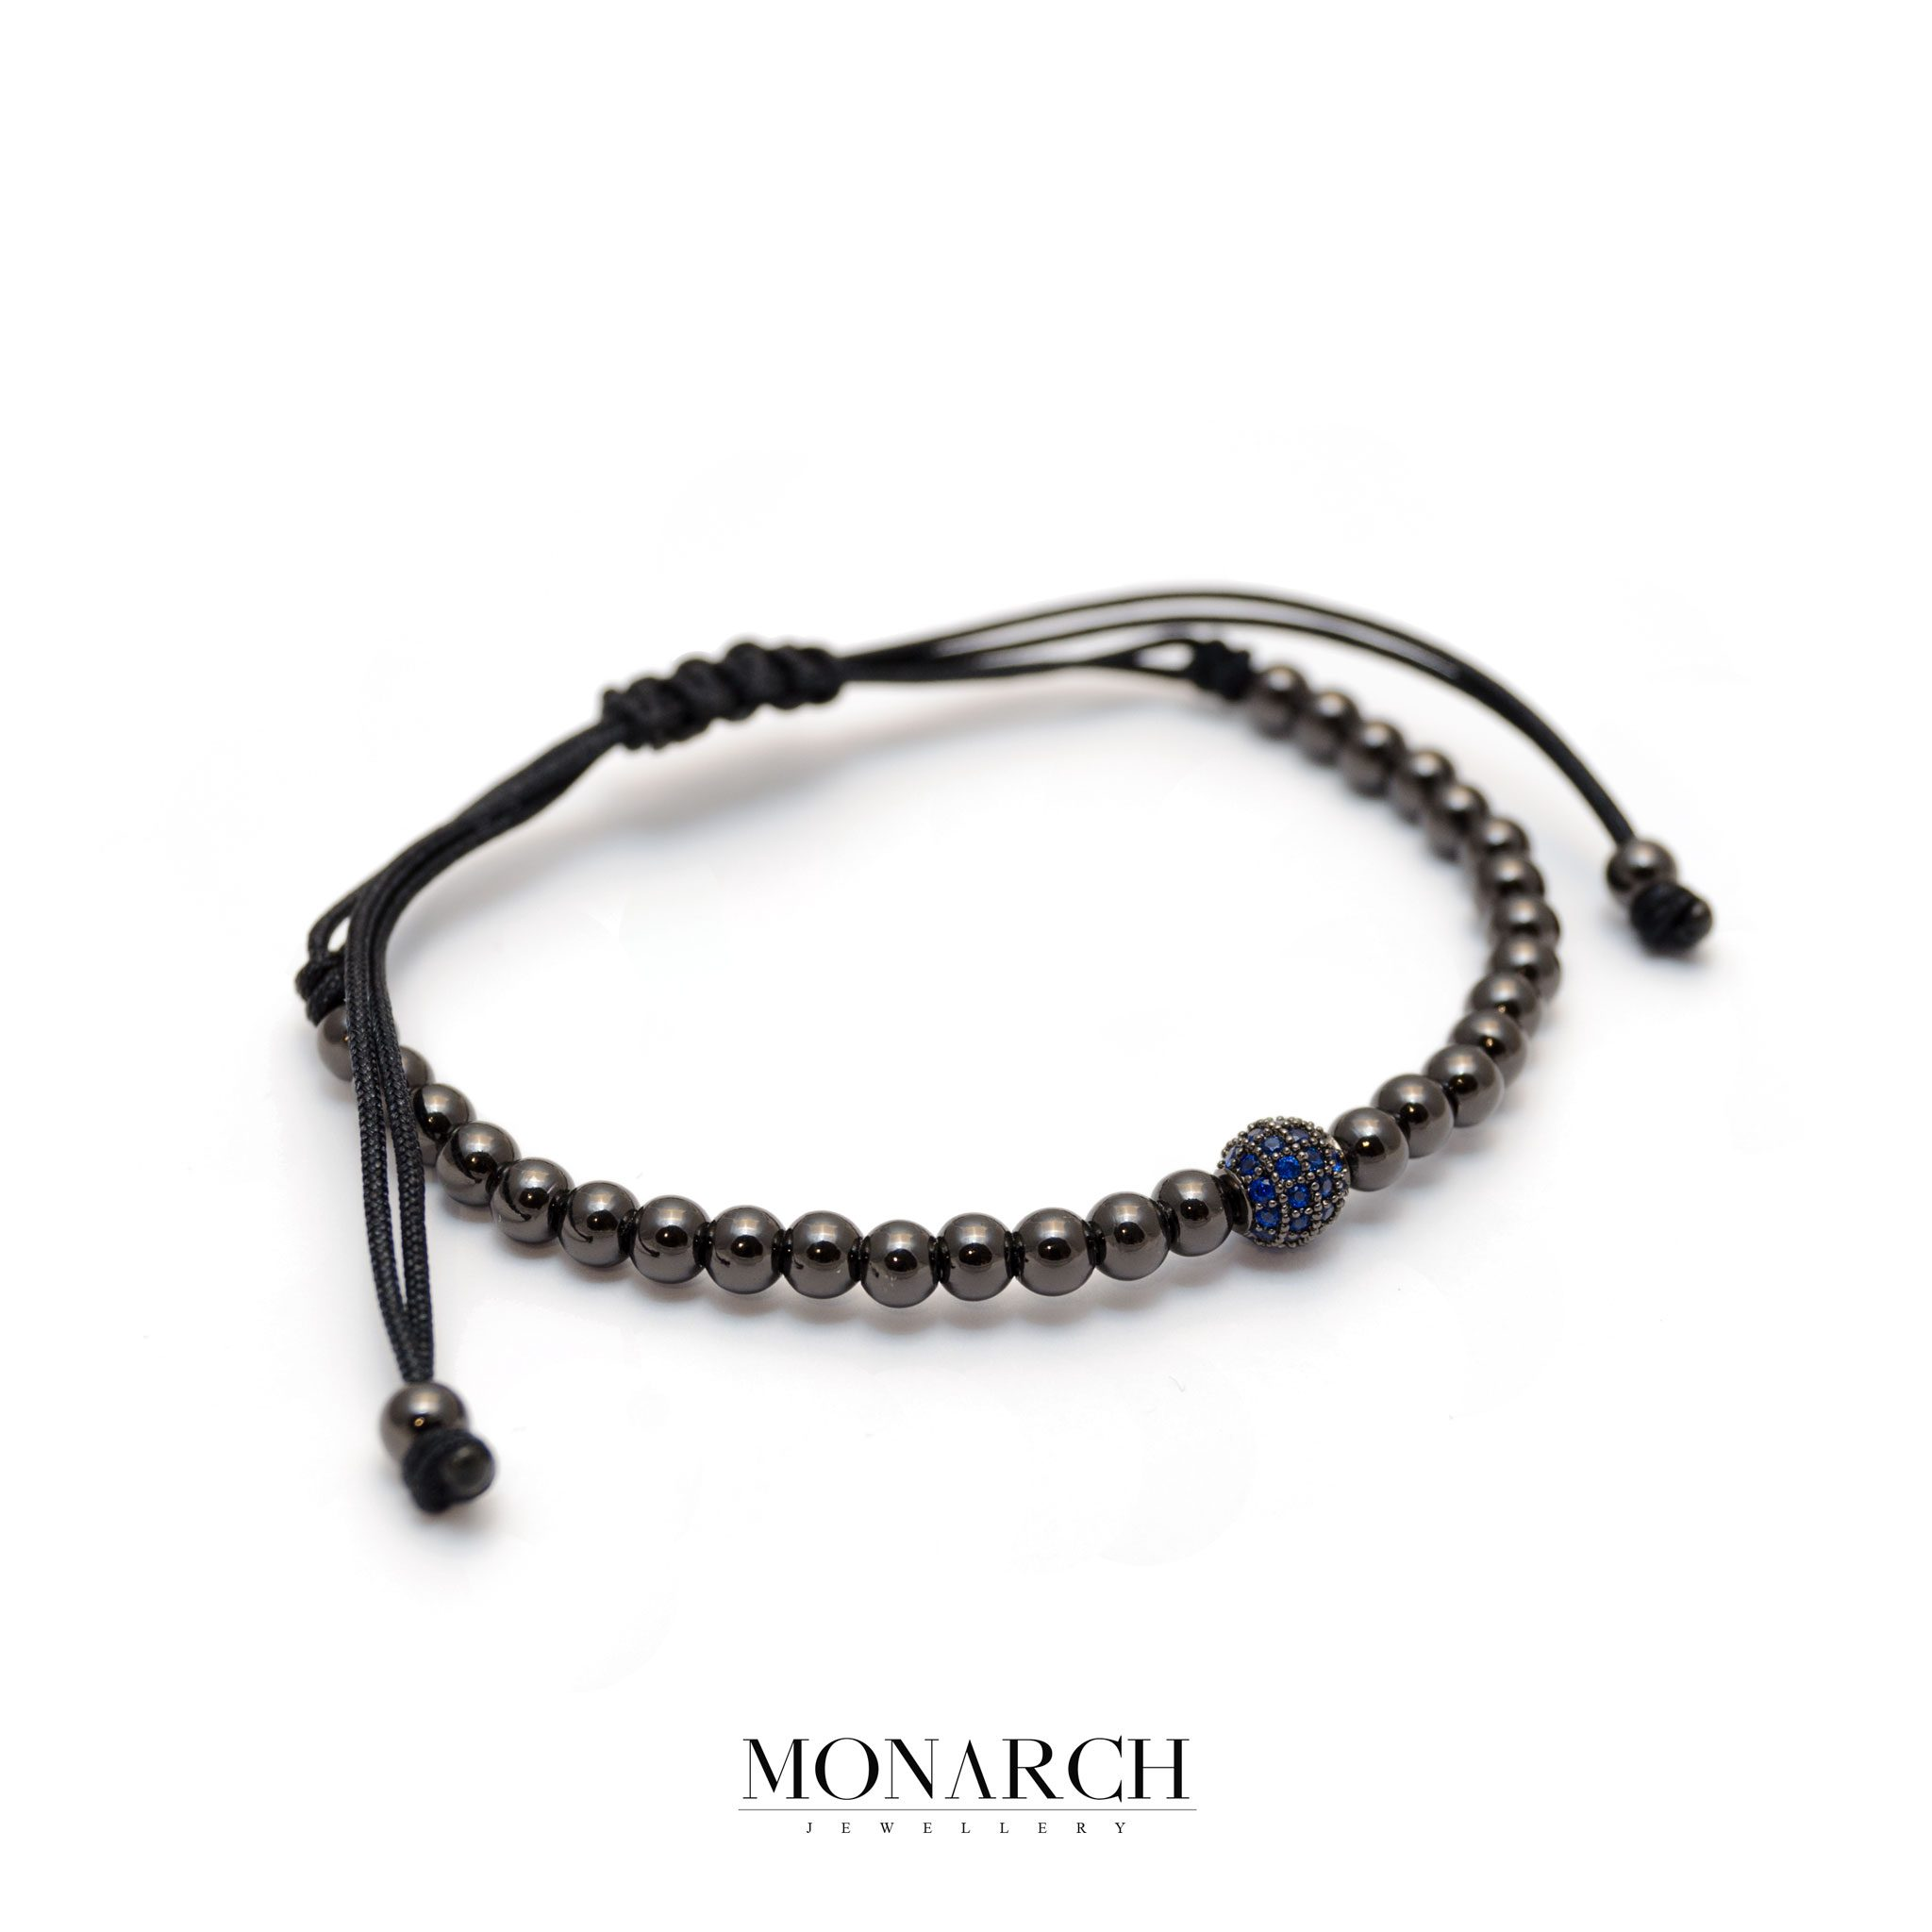 Monarch Jewellery Black Azur Uno Zircon Macrame Bracelet